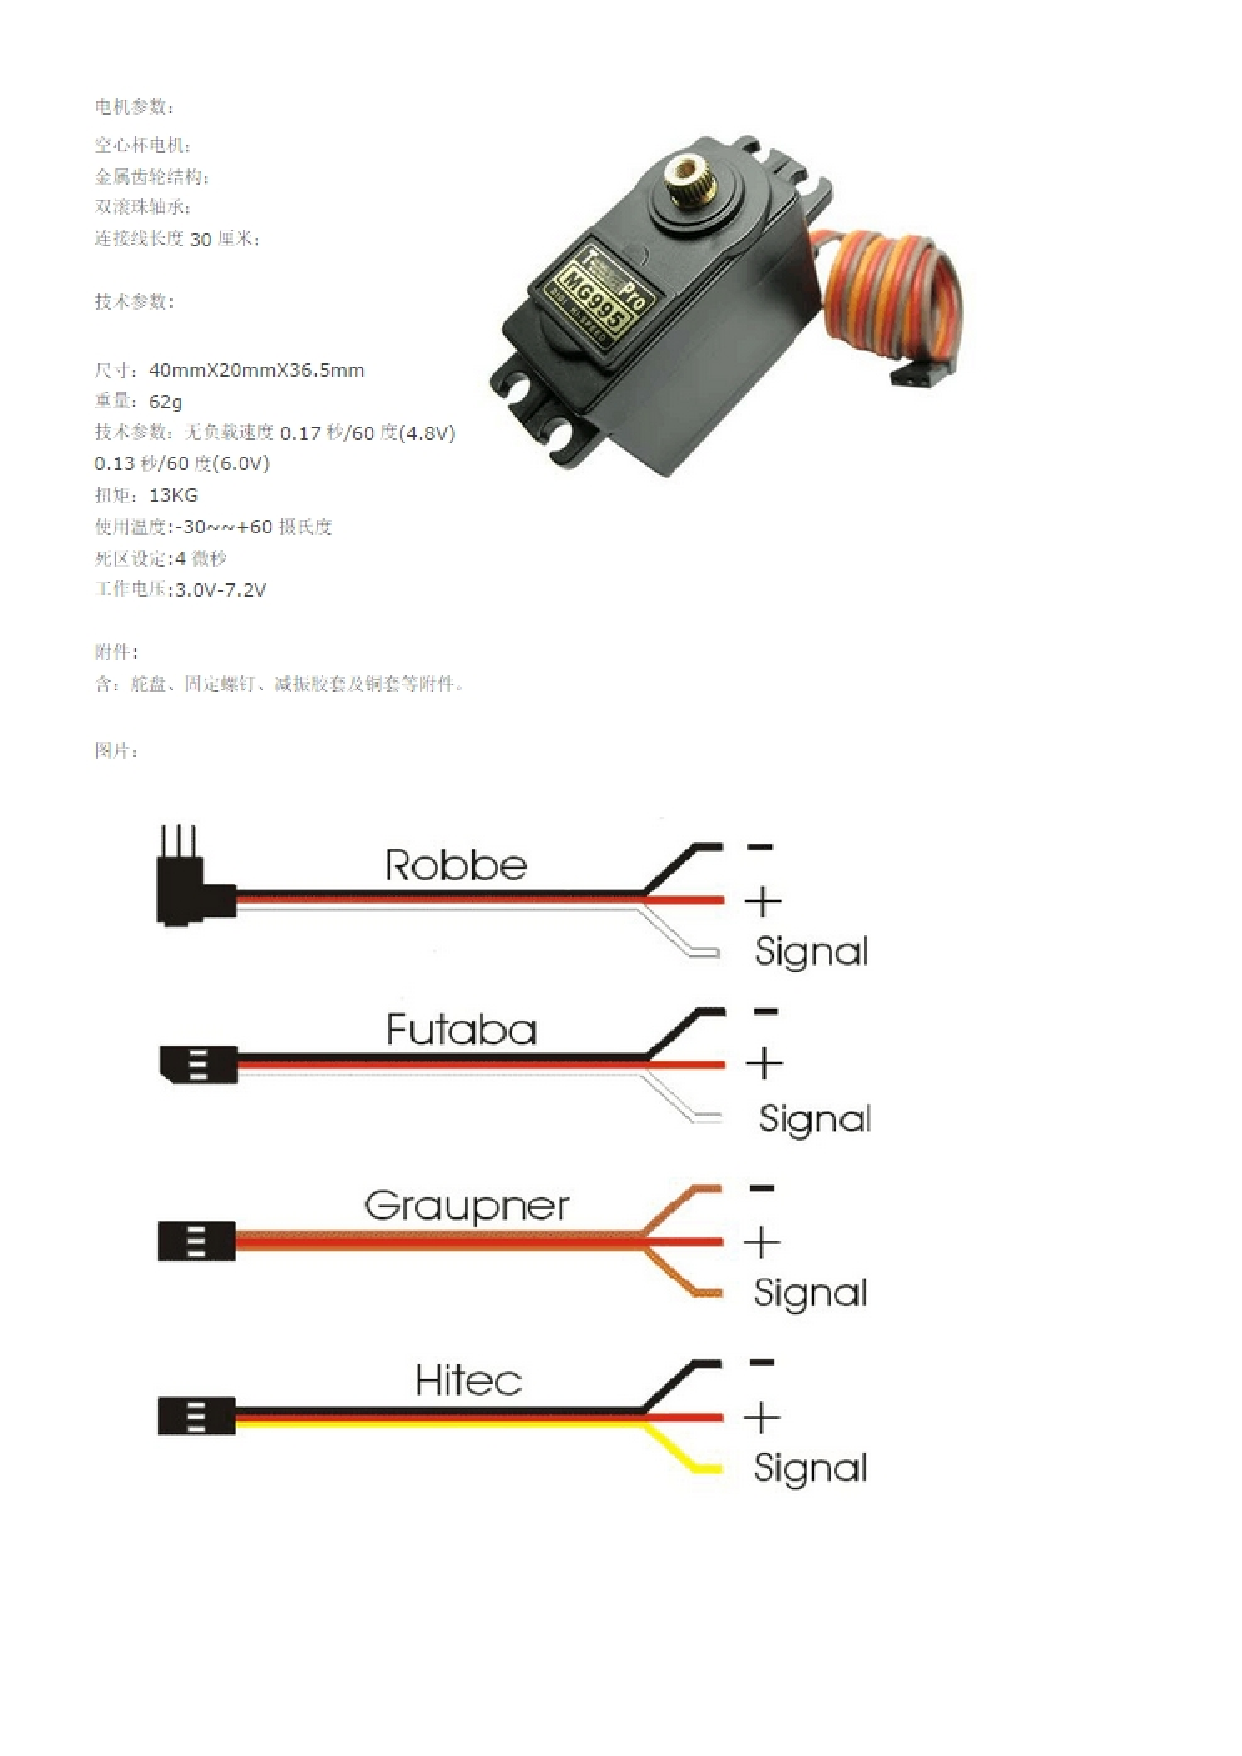 Wifi Ir Blaster Af6bca further Resistors In Series in addition 61j93z moreover Cx Programmer in addition Analysis Of Forward Conducting Diodes. on voltage drop in series